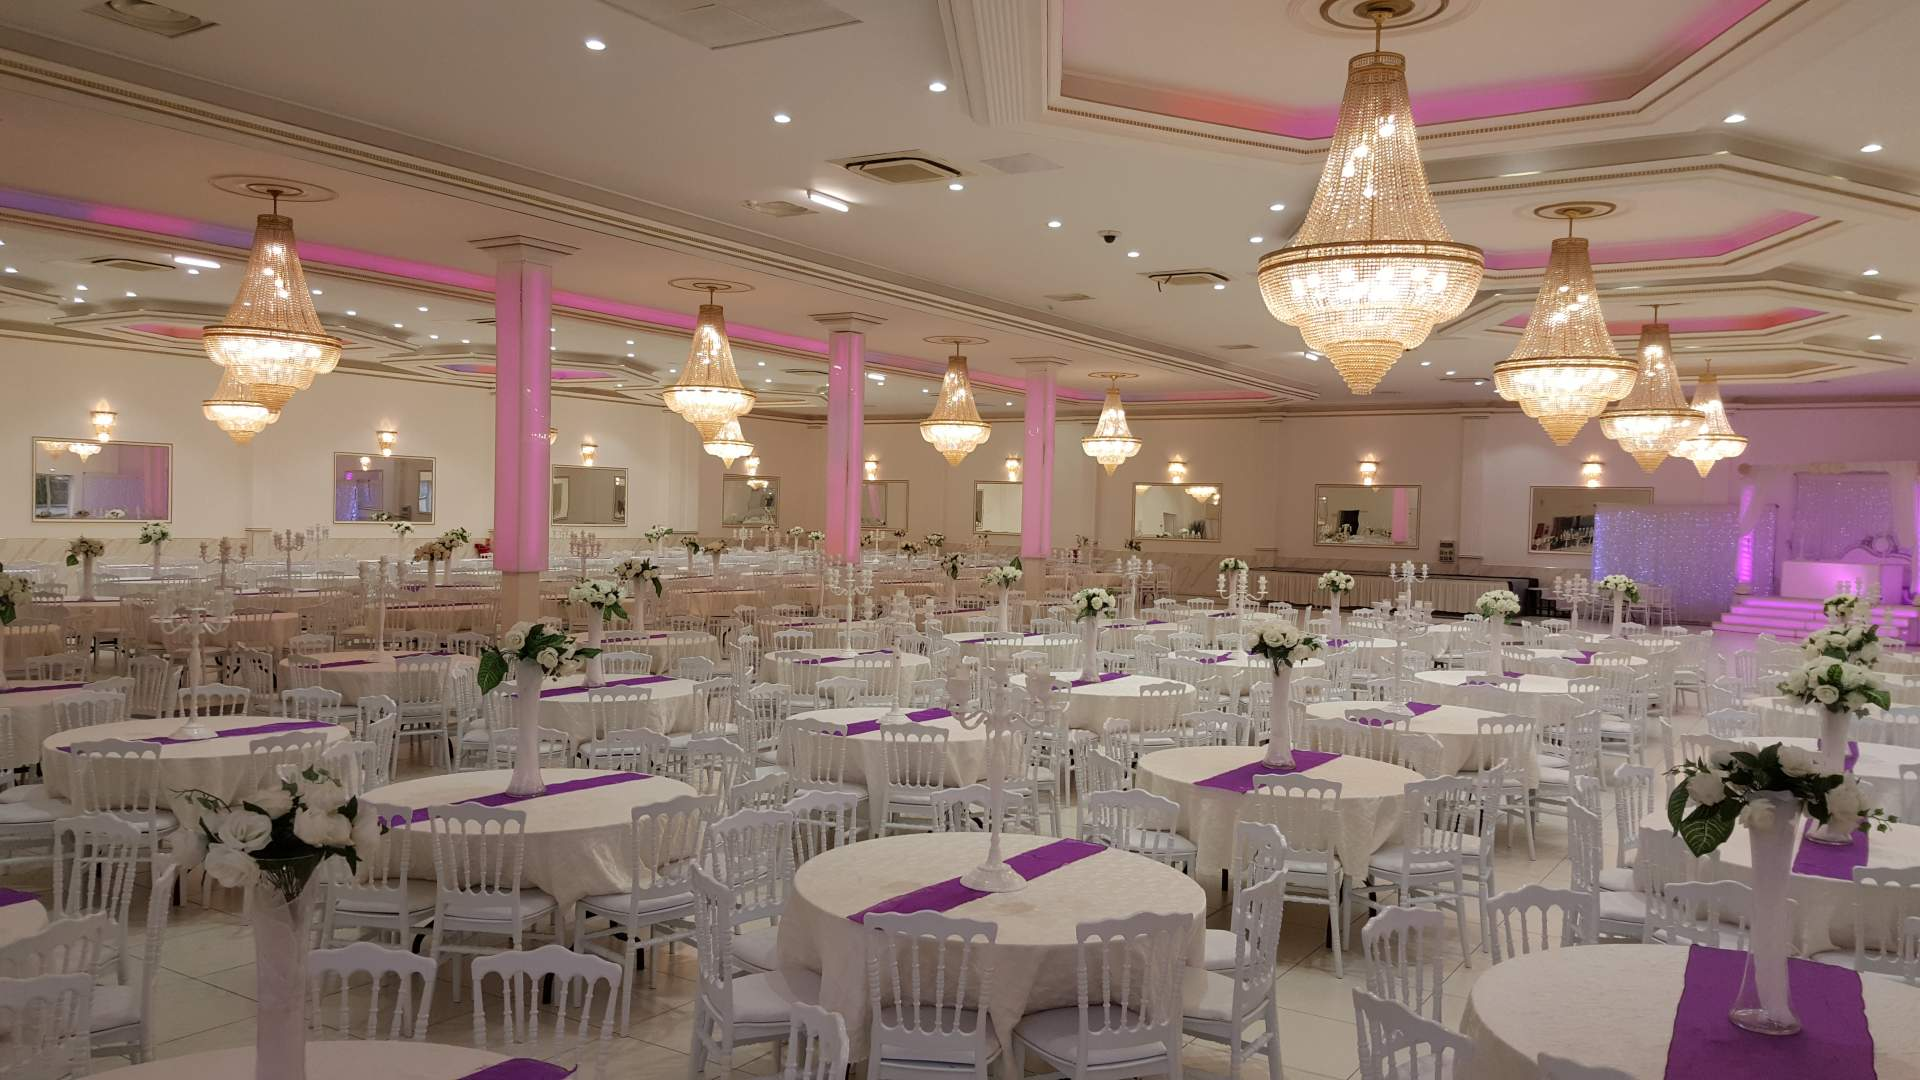 Salle De Marriage Villiers Le Bel 95400